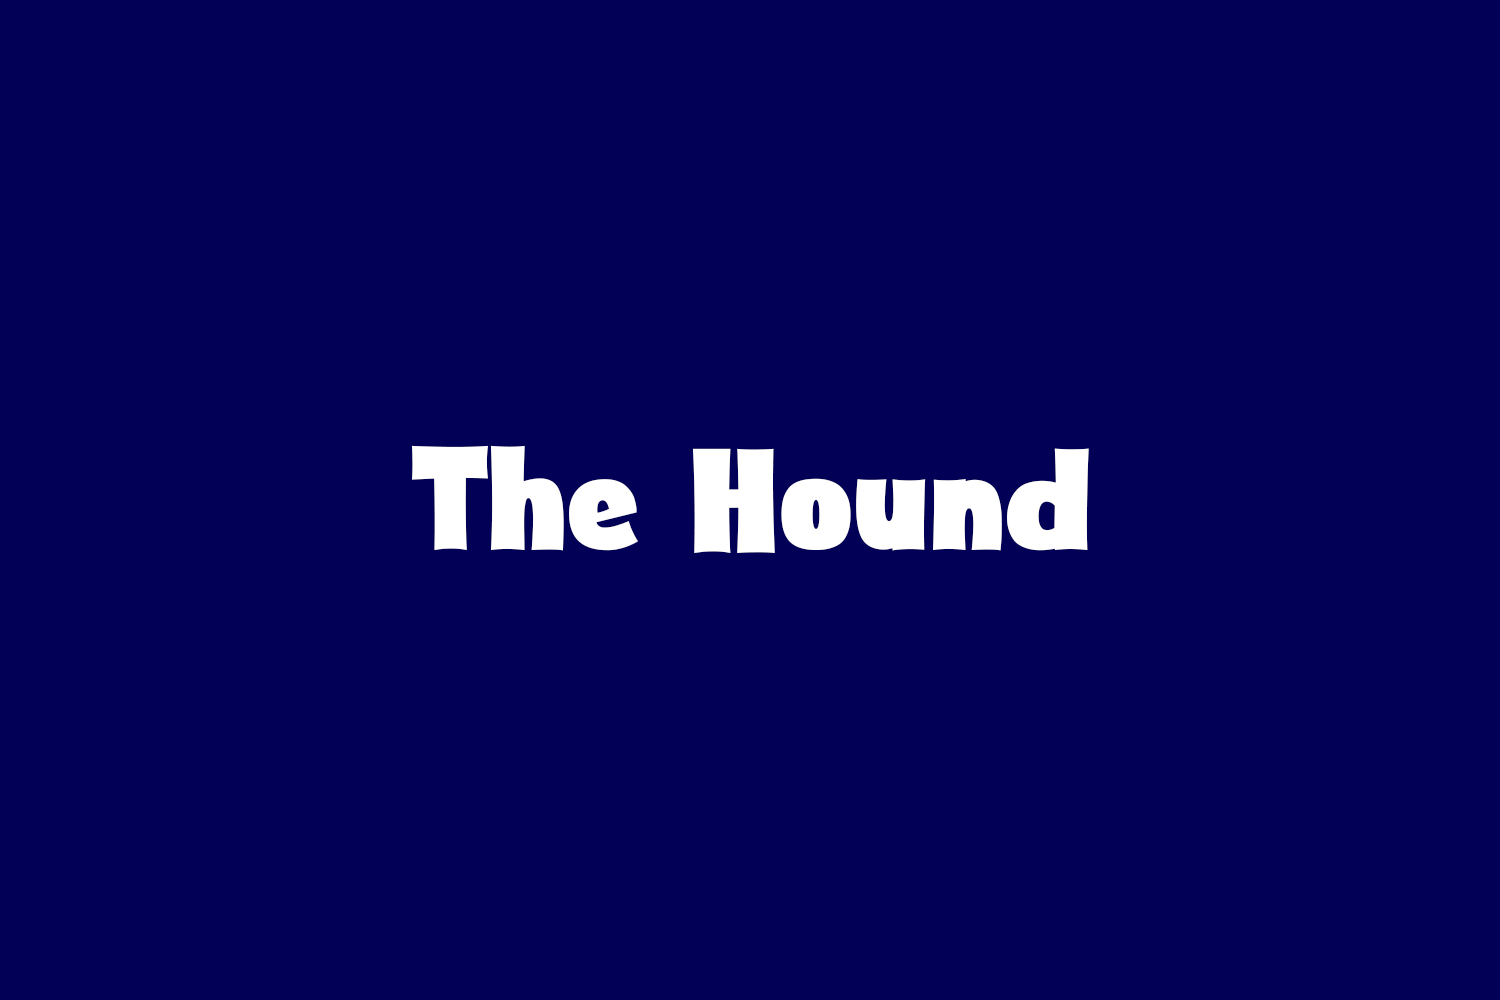 The Hound Free Font